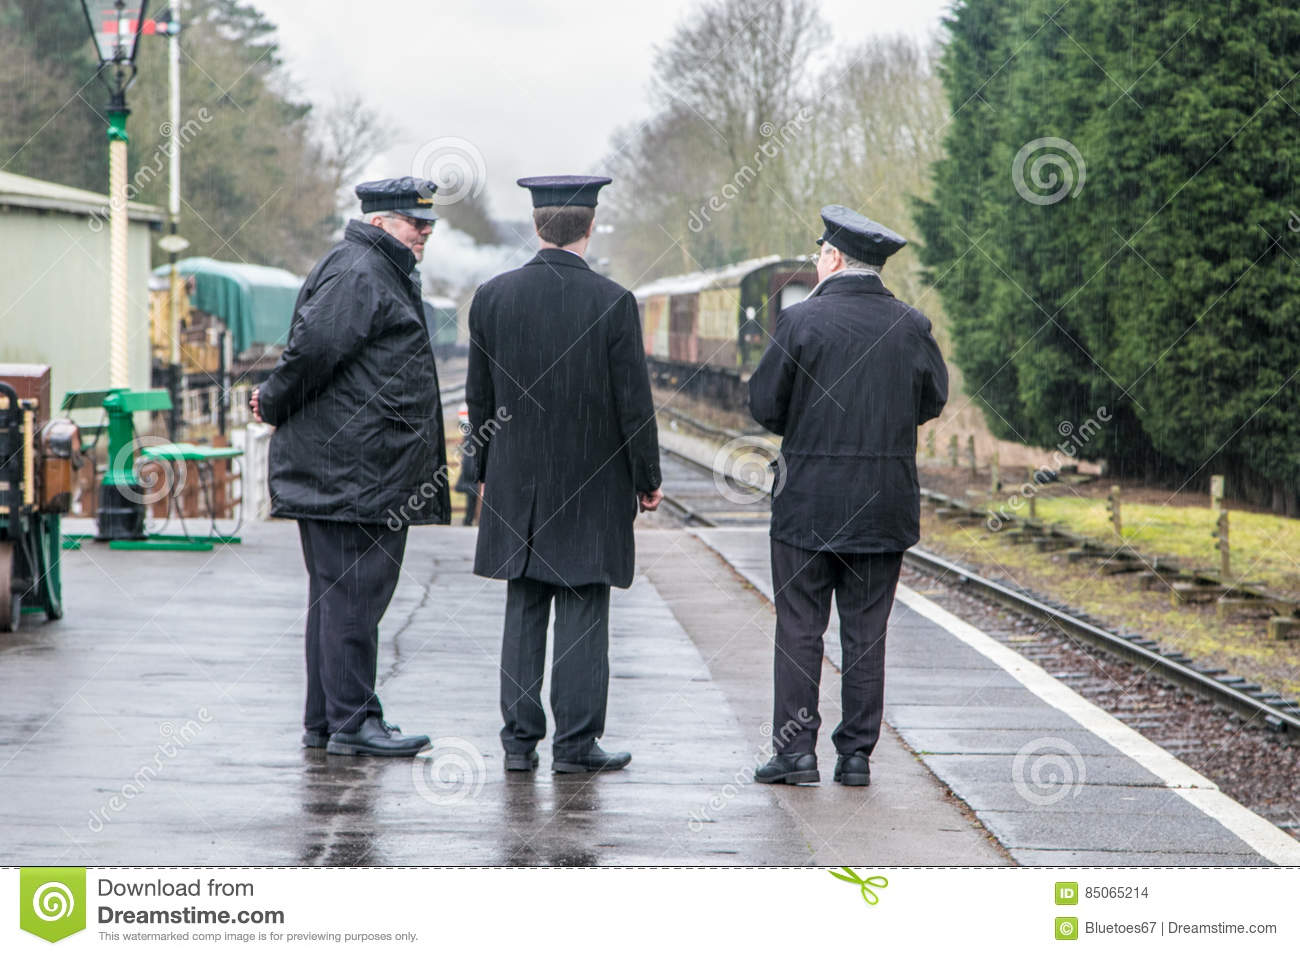 English steam trains and three conductors on the platform